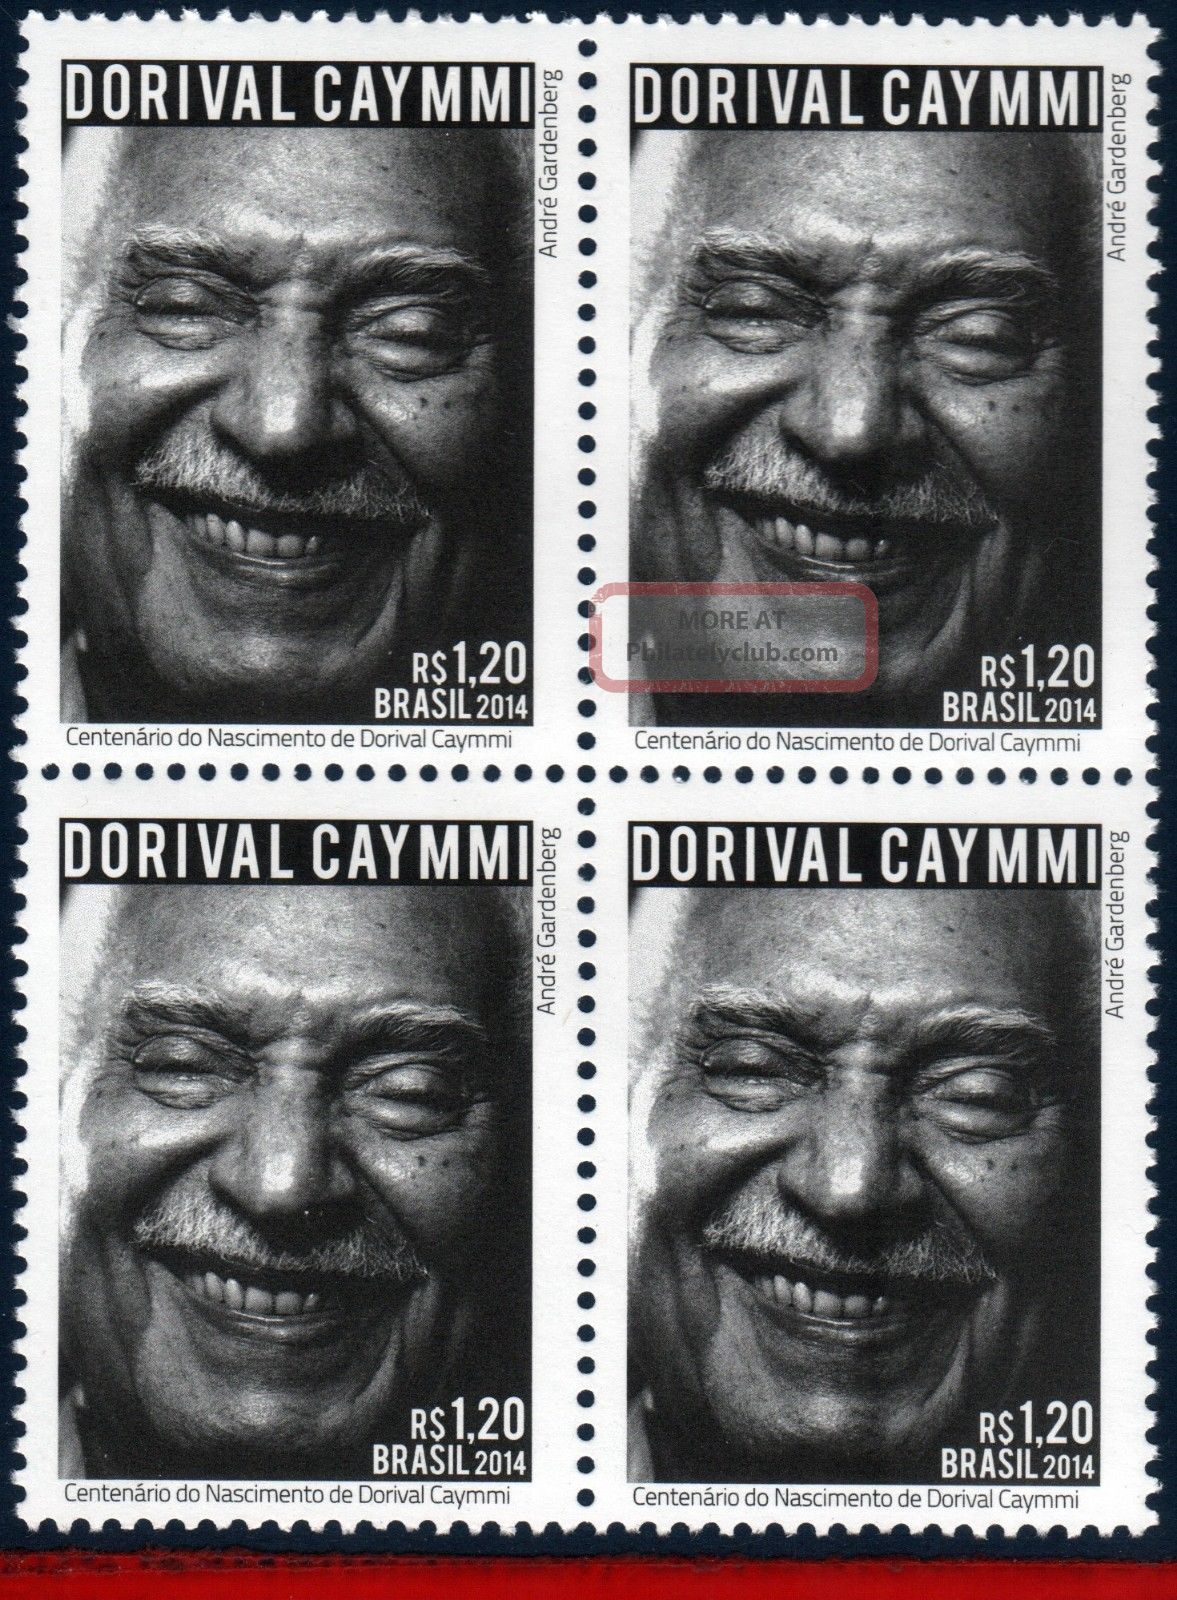 14 - 07q Brazil 2014 Dorival Caymmi,  Composer,  Singer,  Music,  Famous People, Latin America photo